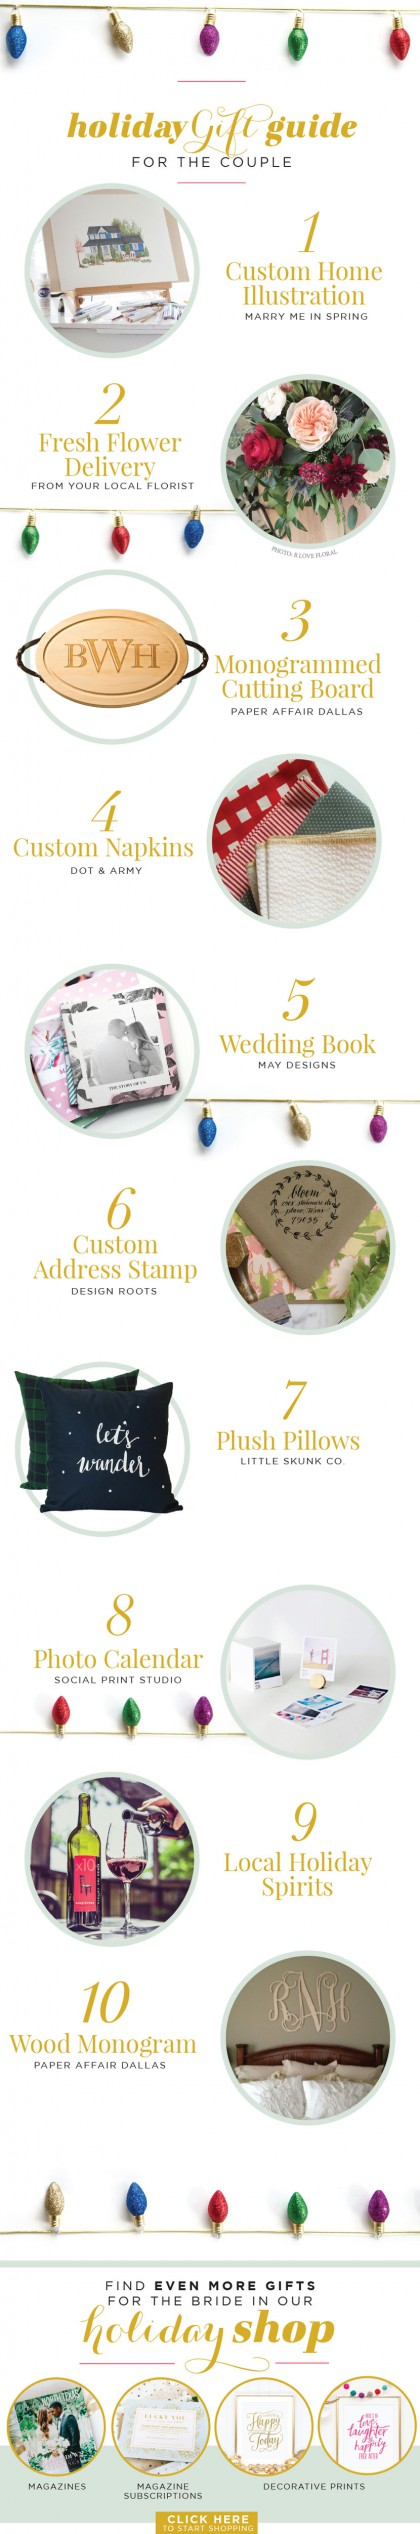 Image in the blog=> Top 10 Gift Ideas for the Newlywed Couple this Holiday Season  - holidaygiftguide_blogs_COUPLES_BONT.jpg